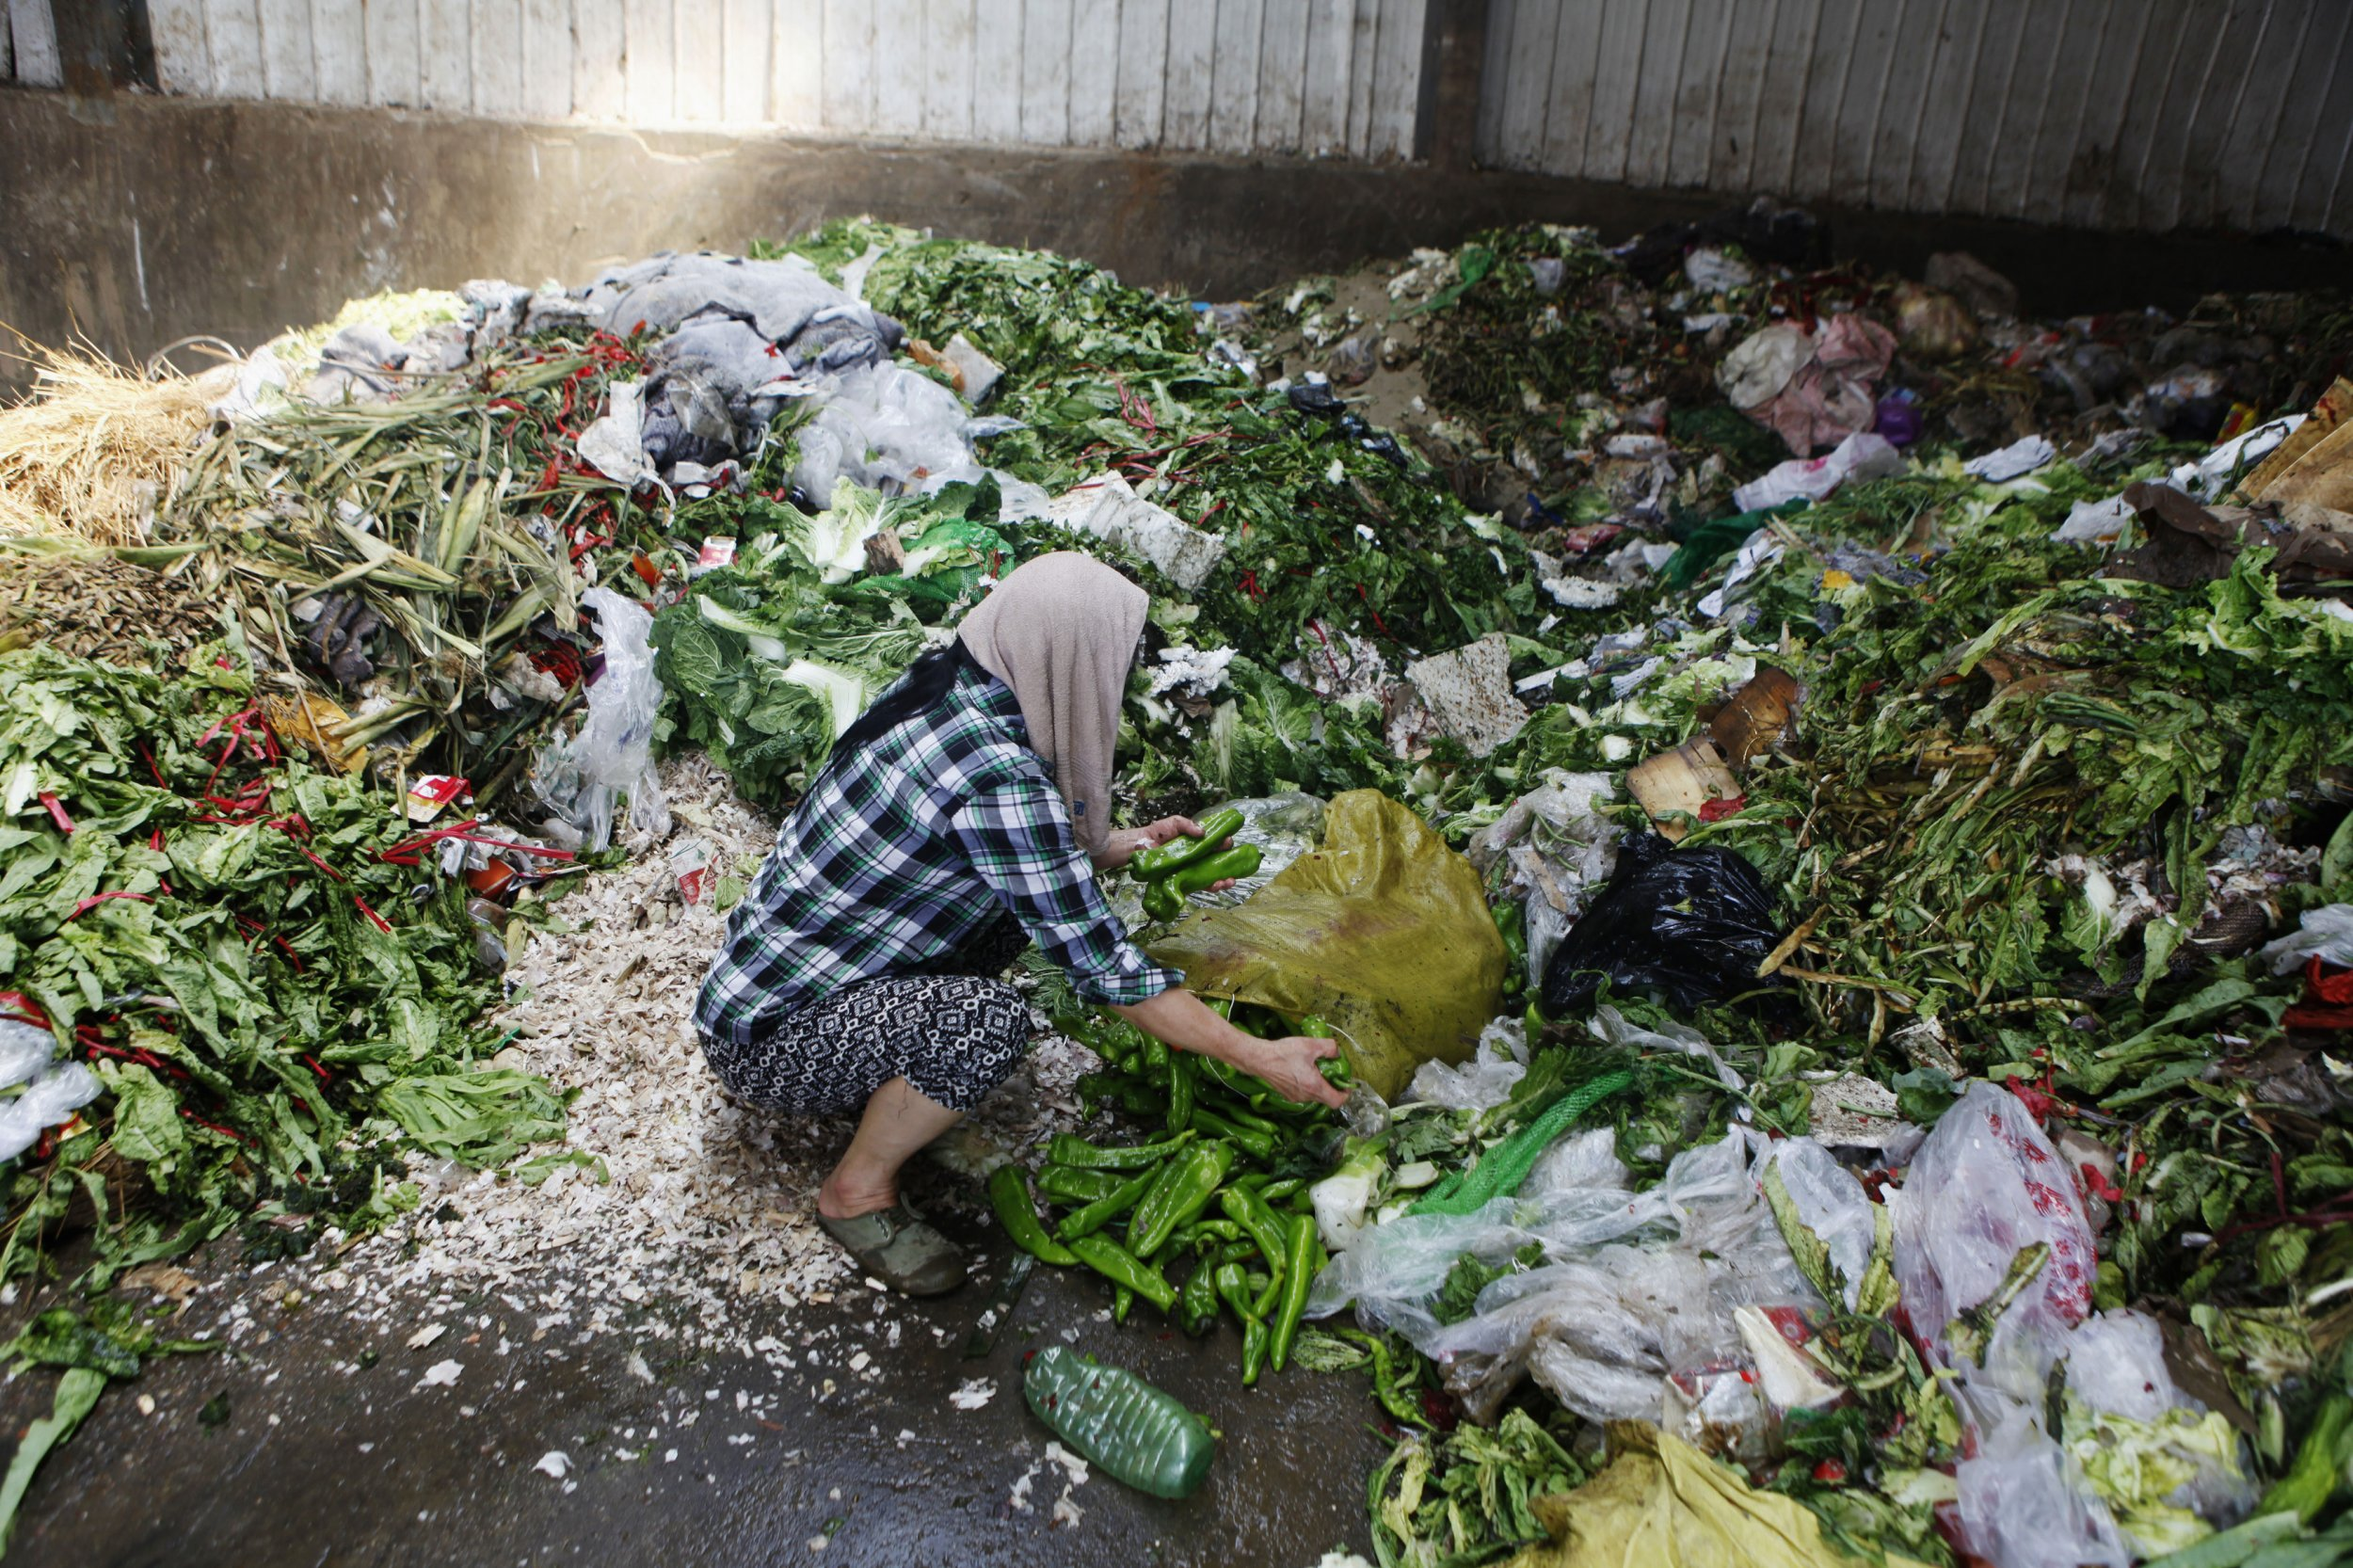 Food waste adding to climate change